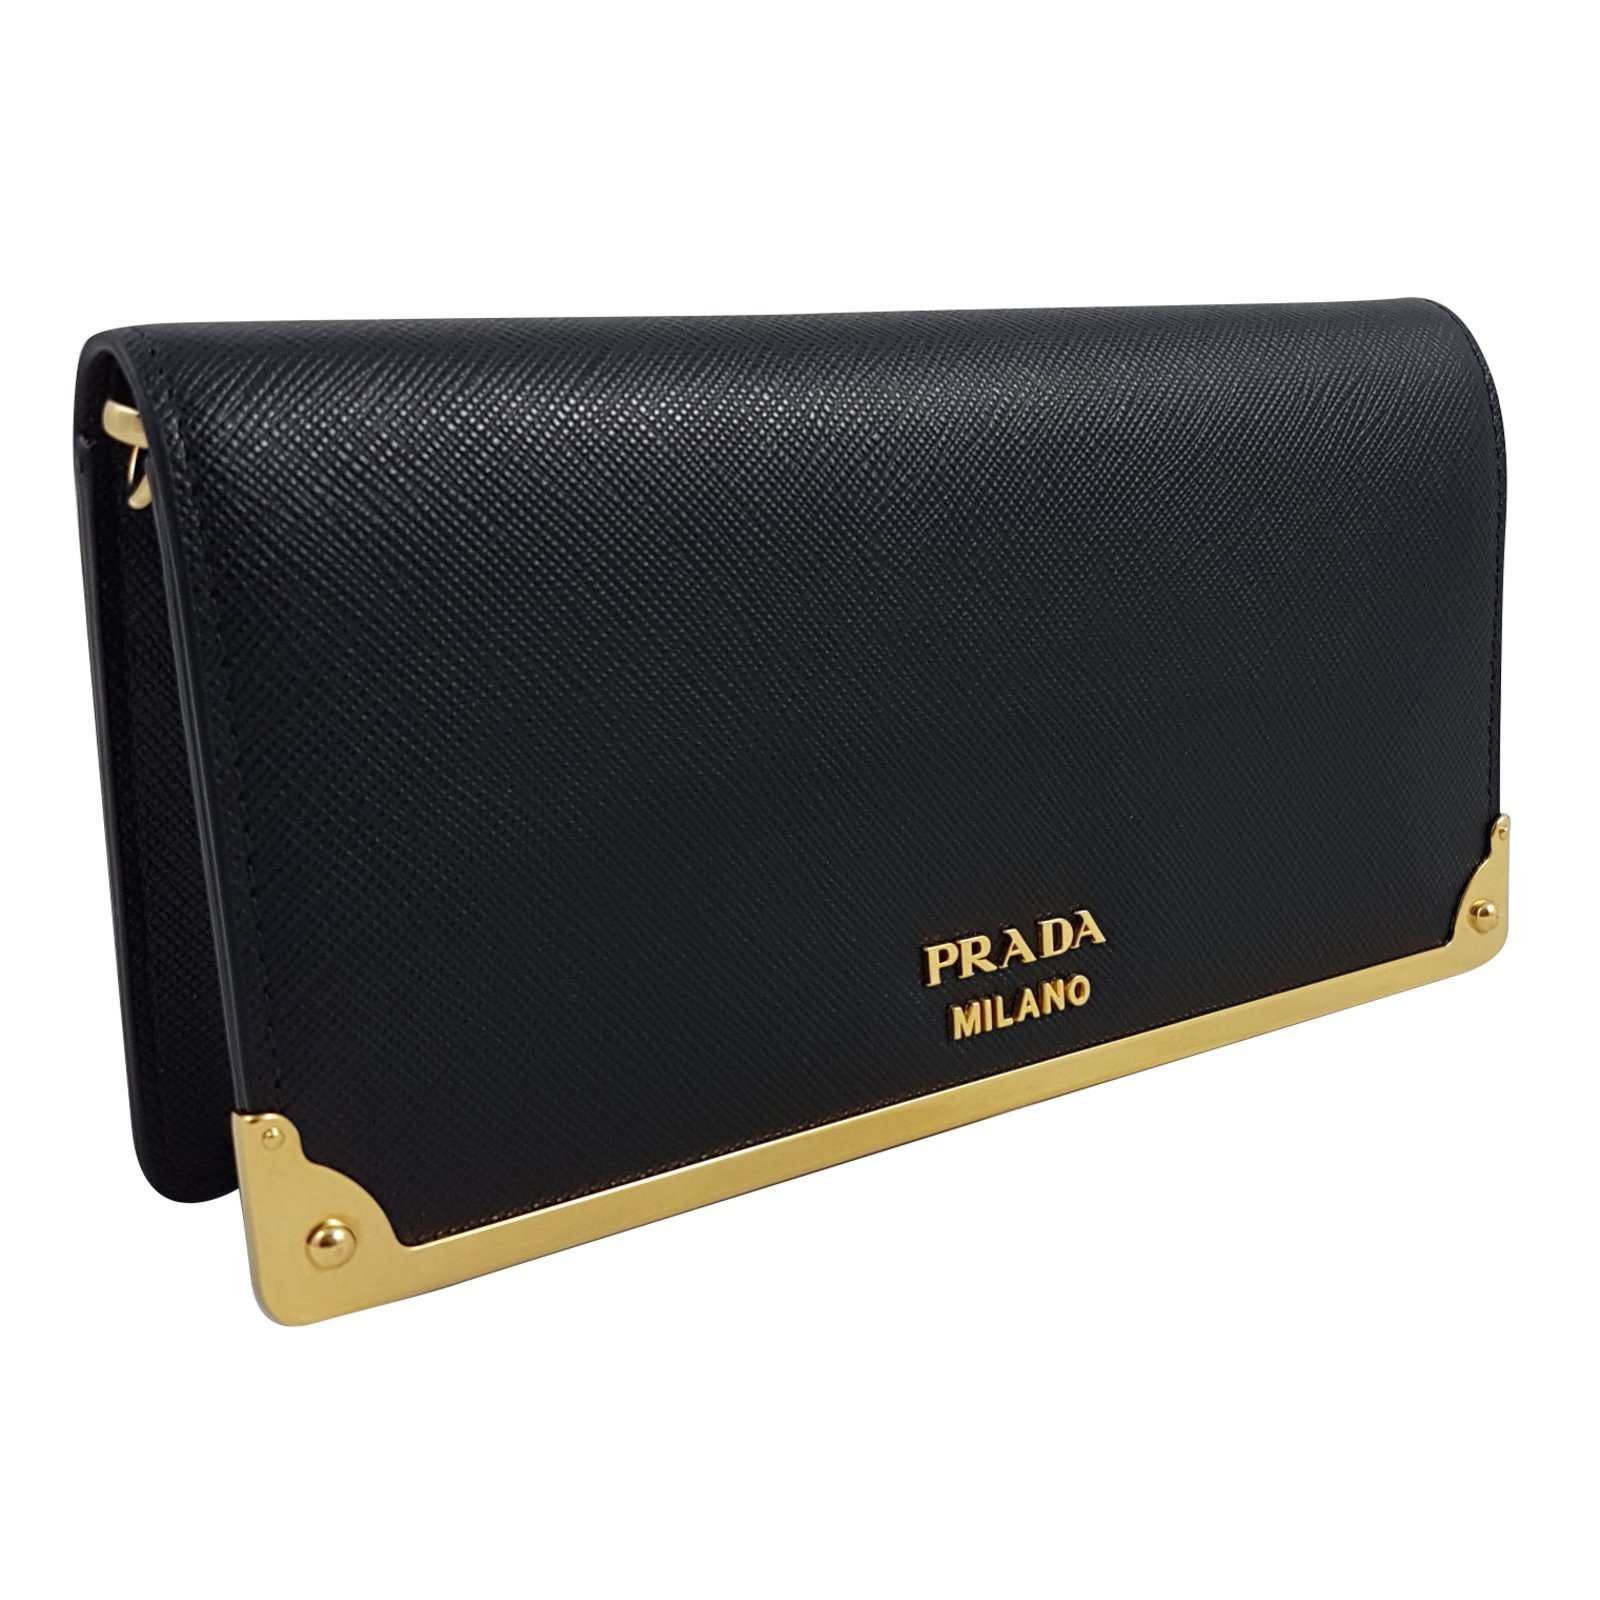 1a5716597df ... promo code for prada prada wallet on chain purses wallets cases leather  black ref.59353